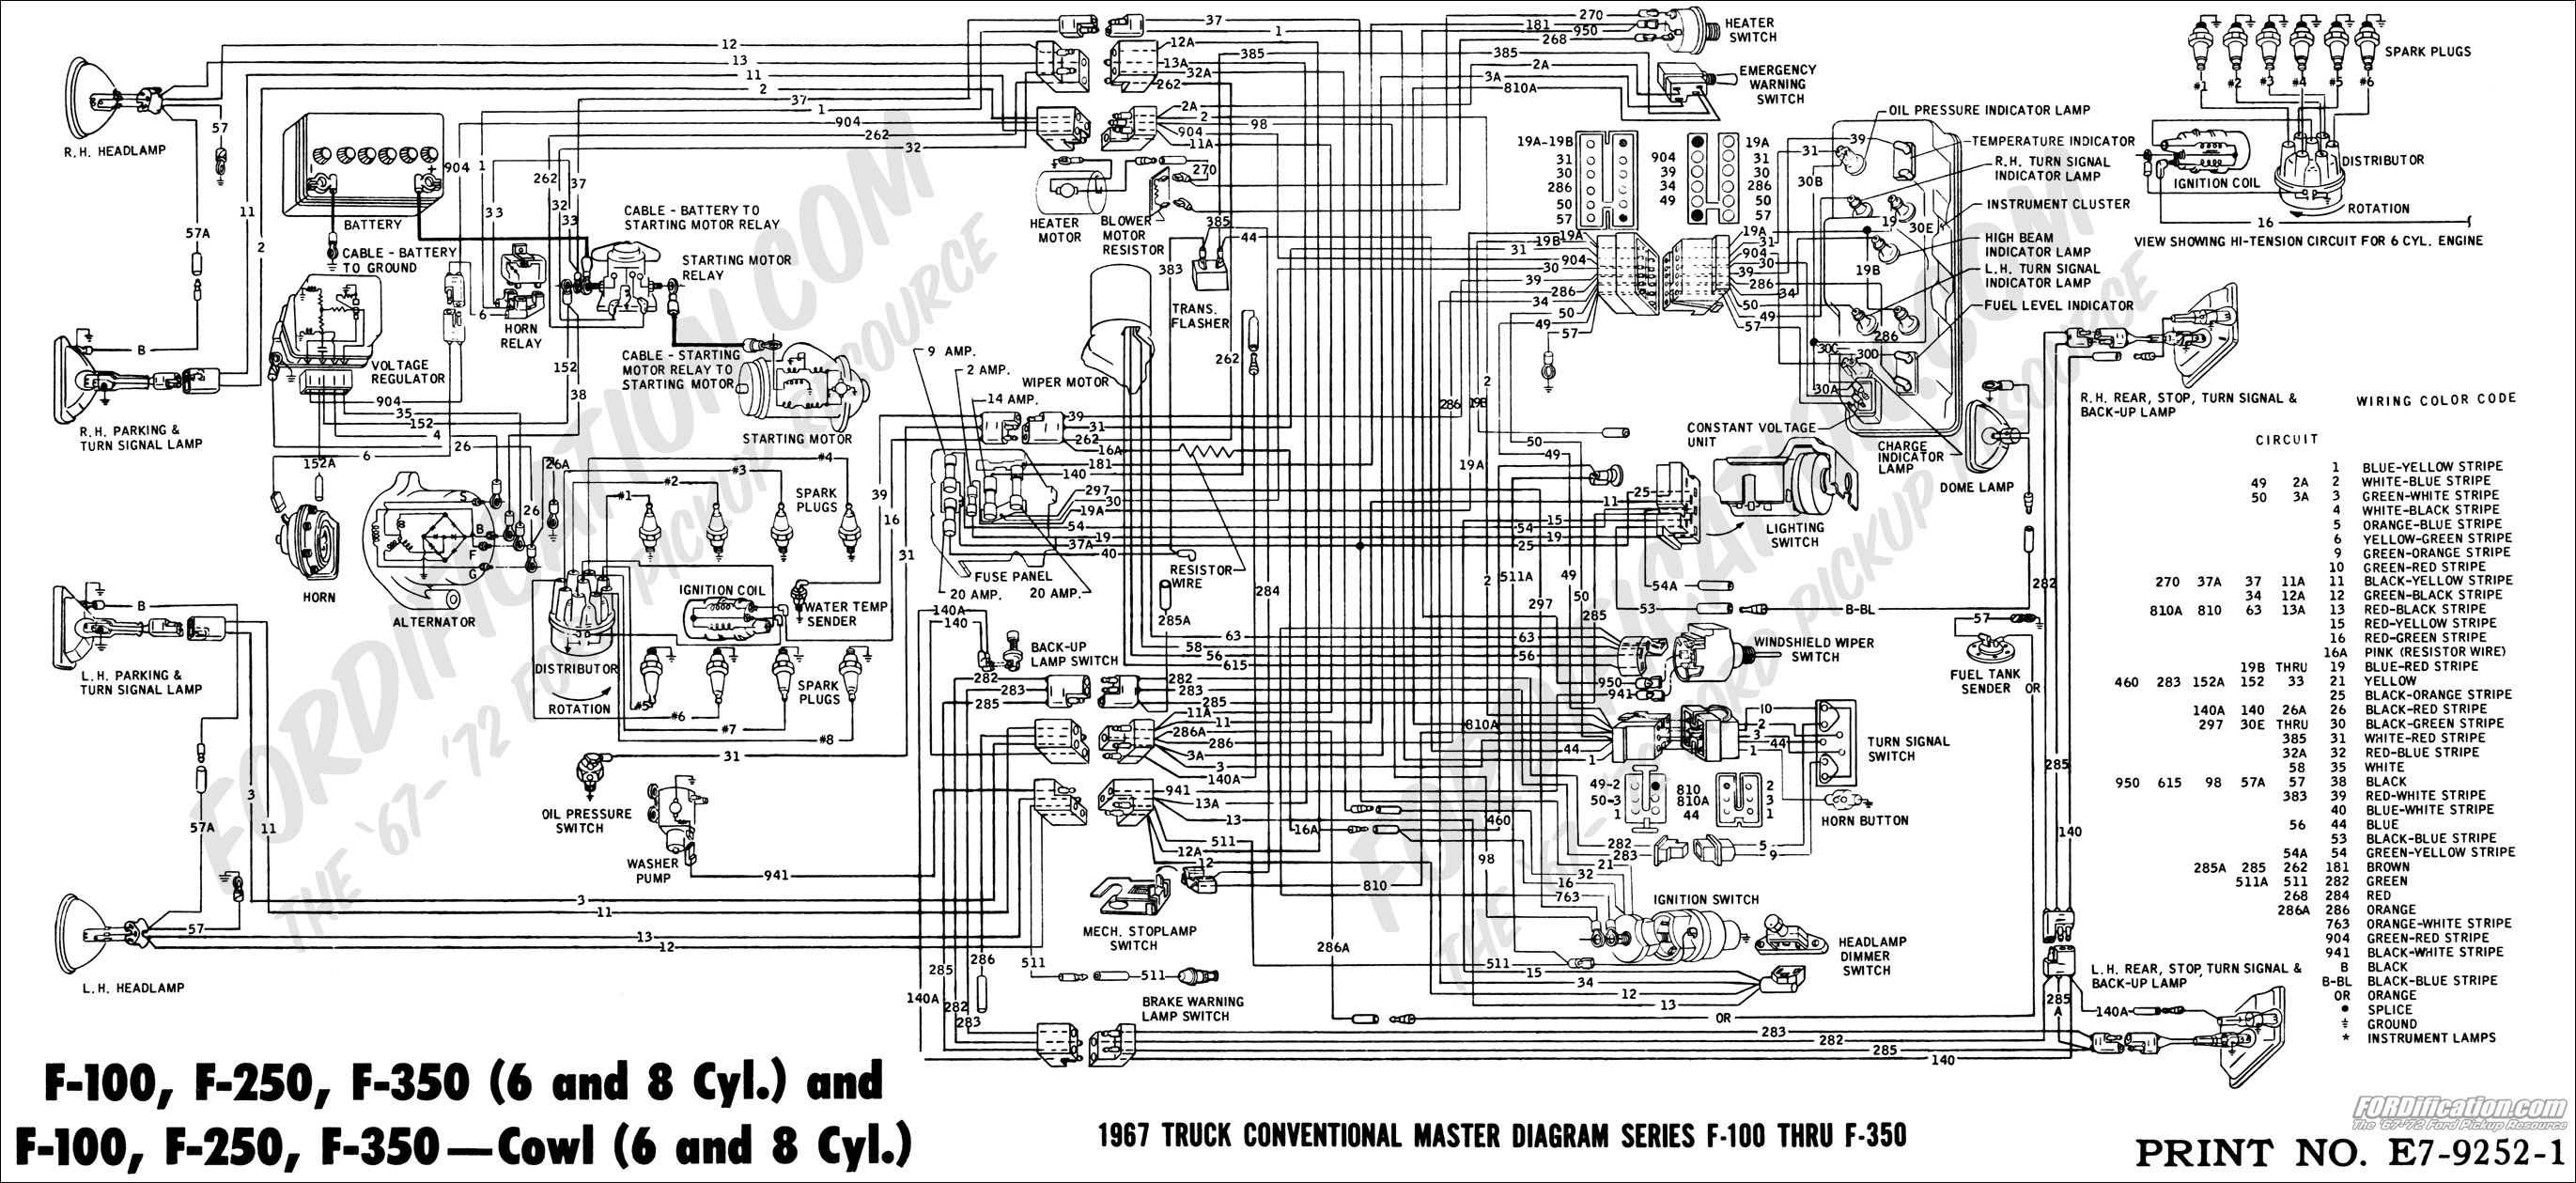 1967 Ford F250 Wiring Diagram Detailed 68 Mustang 1968 F 250 Blogs F100 Turn Signal